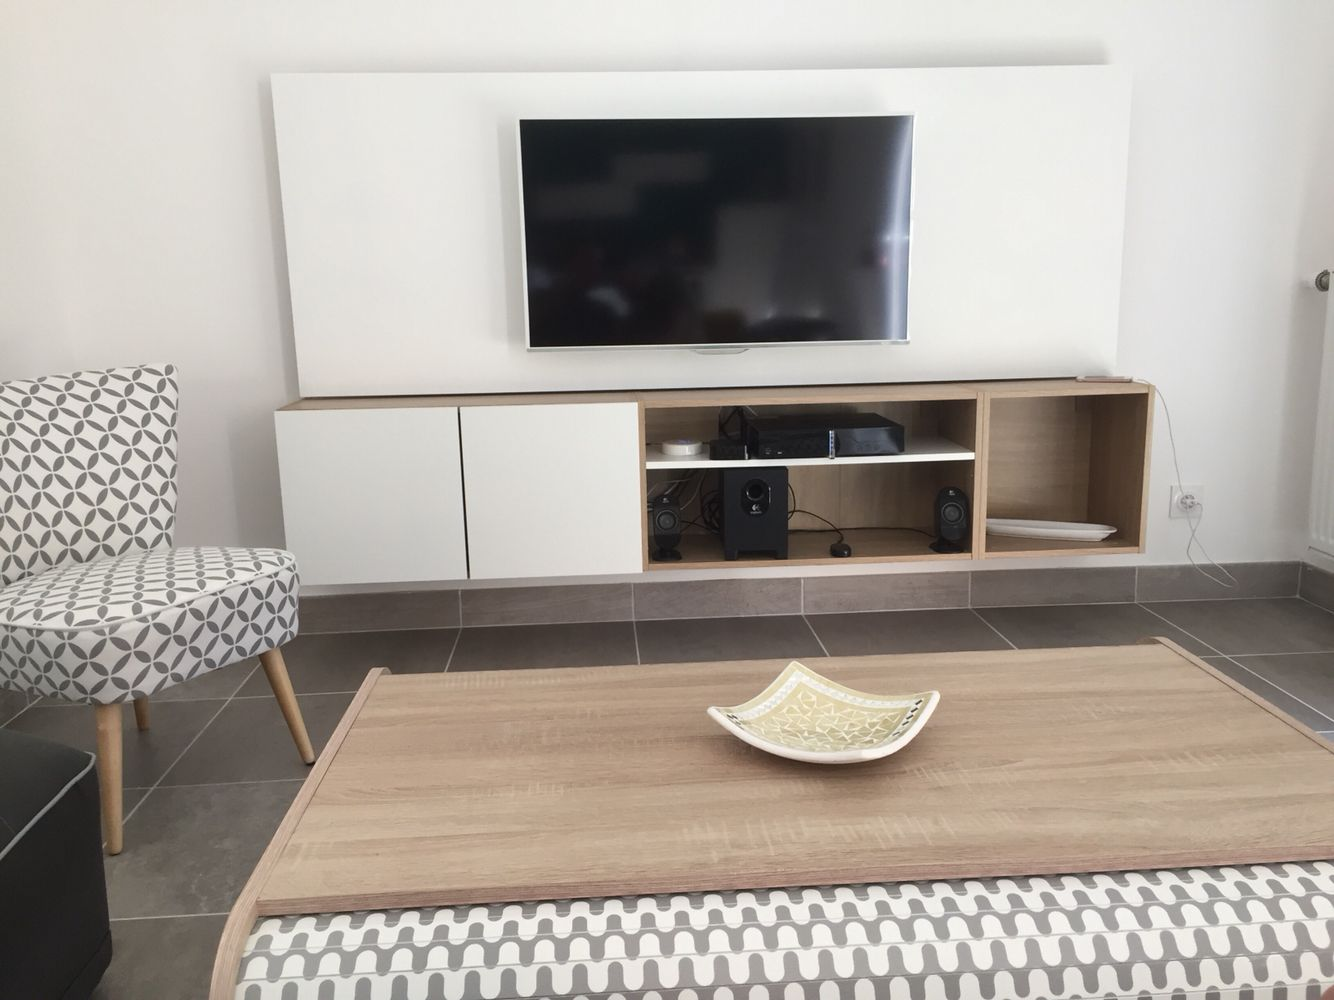 meuble tv suspendu avec panneau mdf peint en blanc caisson. Black Bedroom Furniture Sets. Home Design Ideas